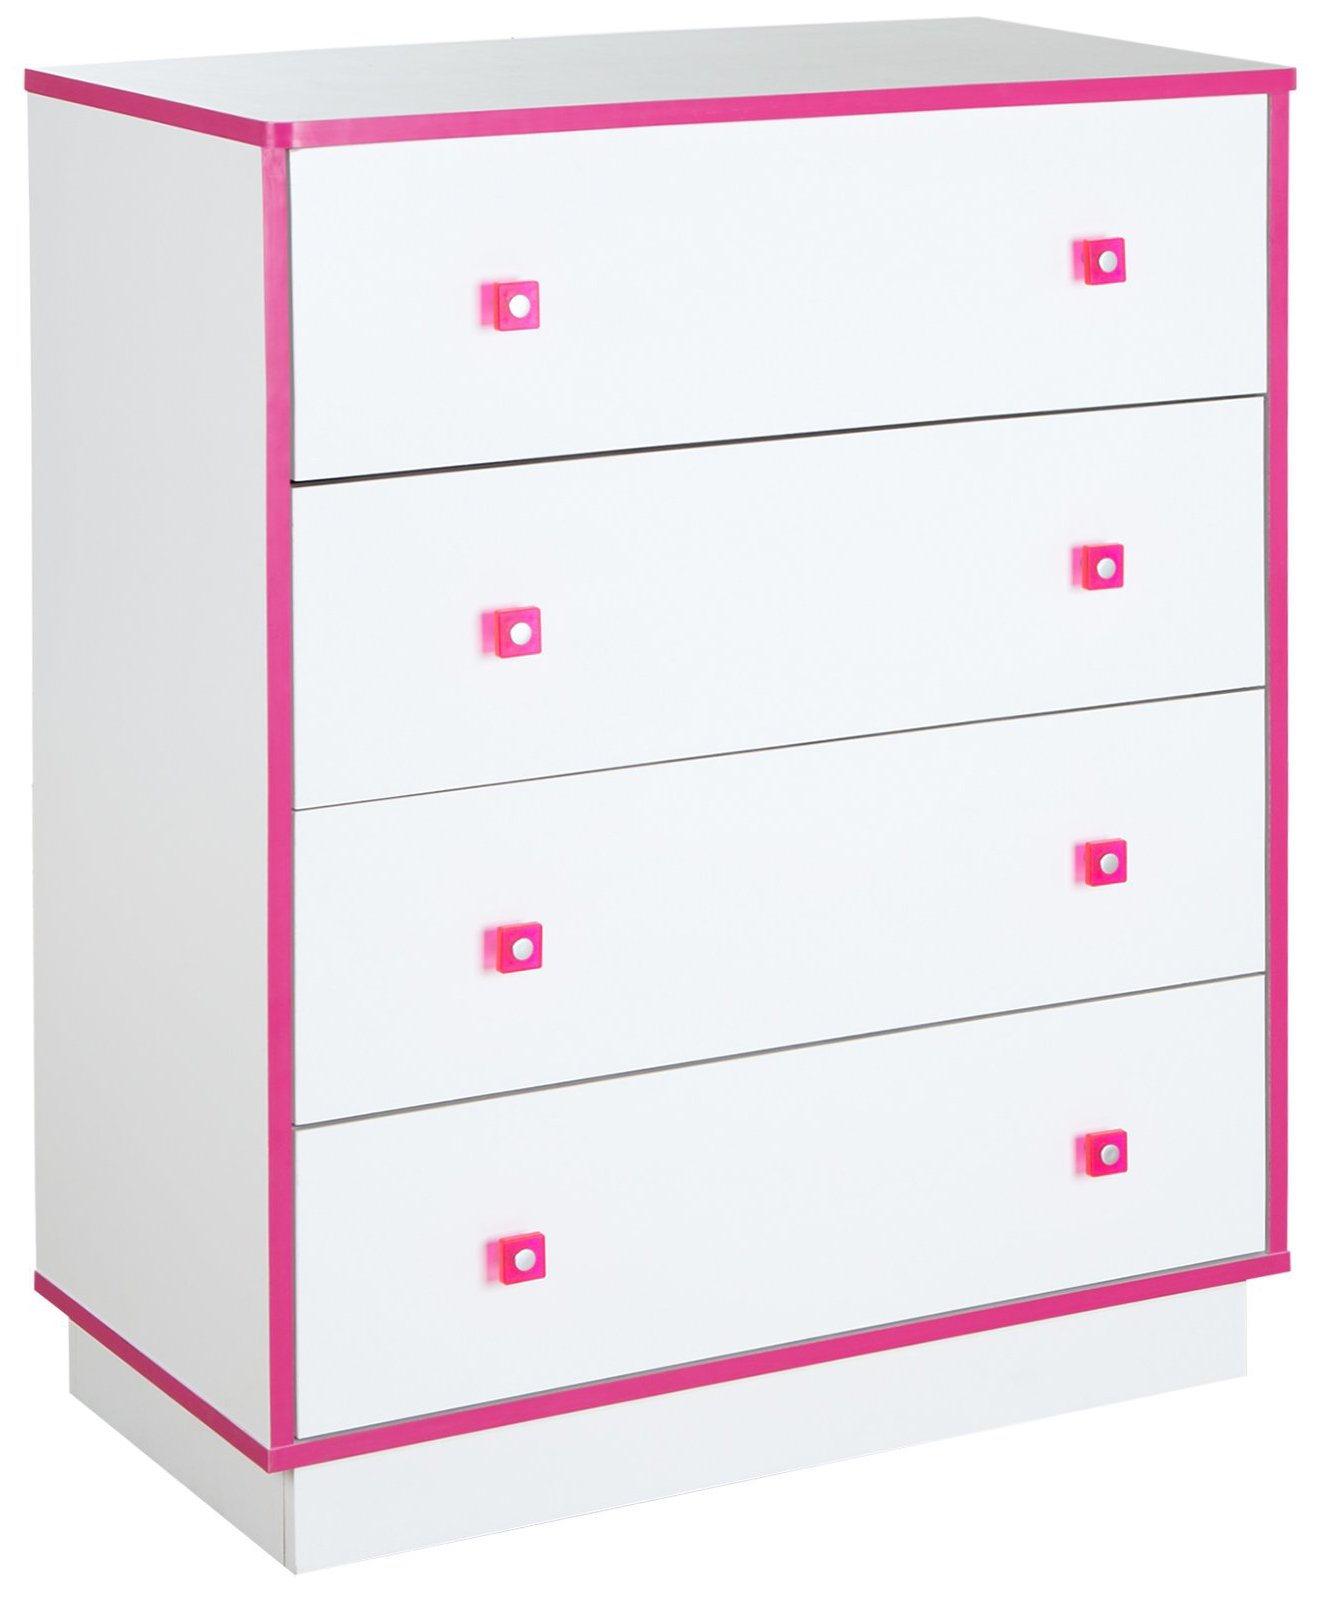 South Shore Logik 4-Drawers Chest, Pure White/Pink by South Shore